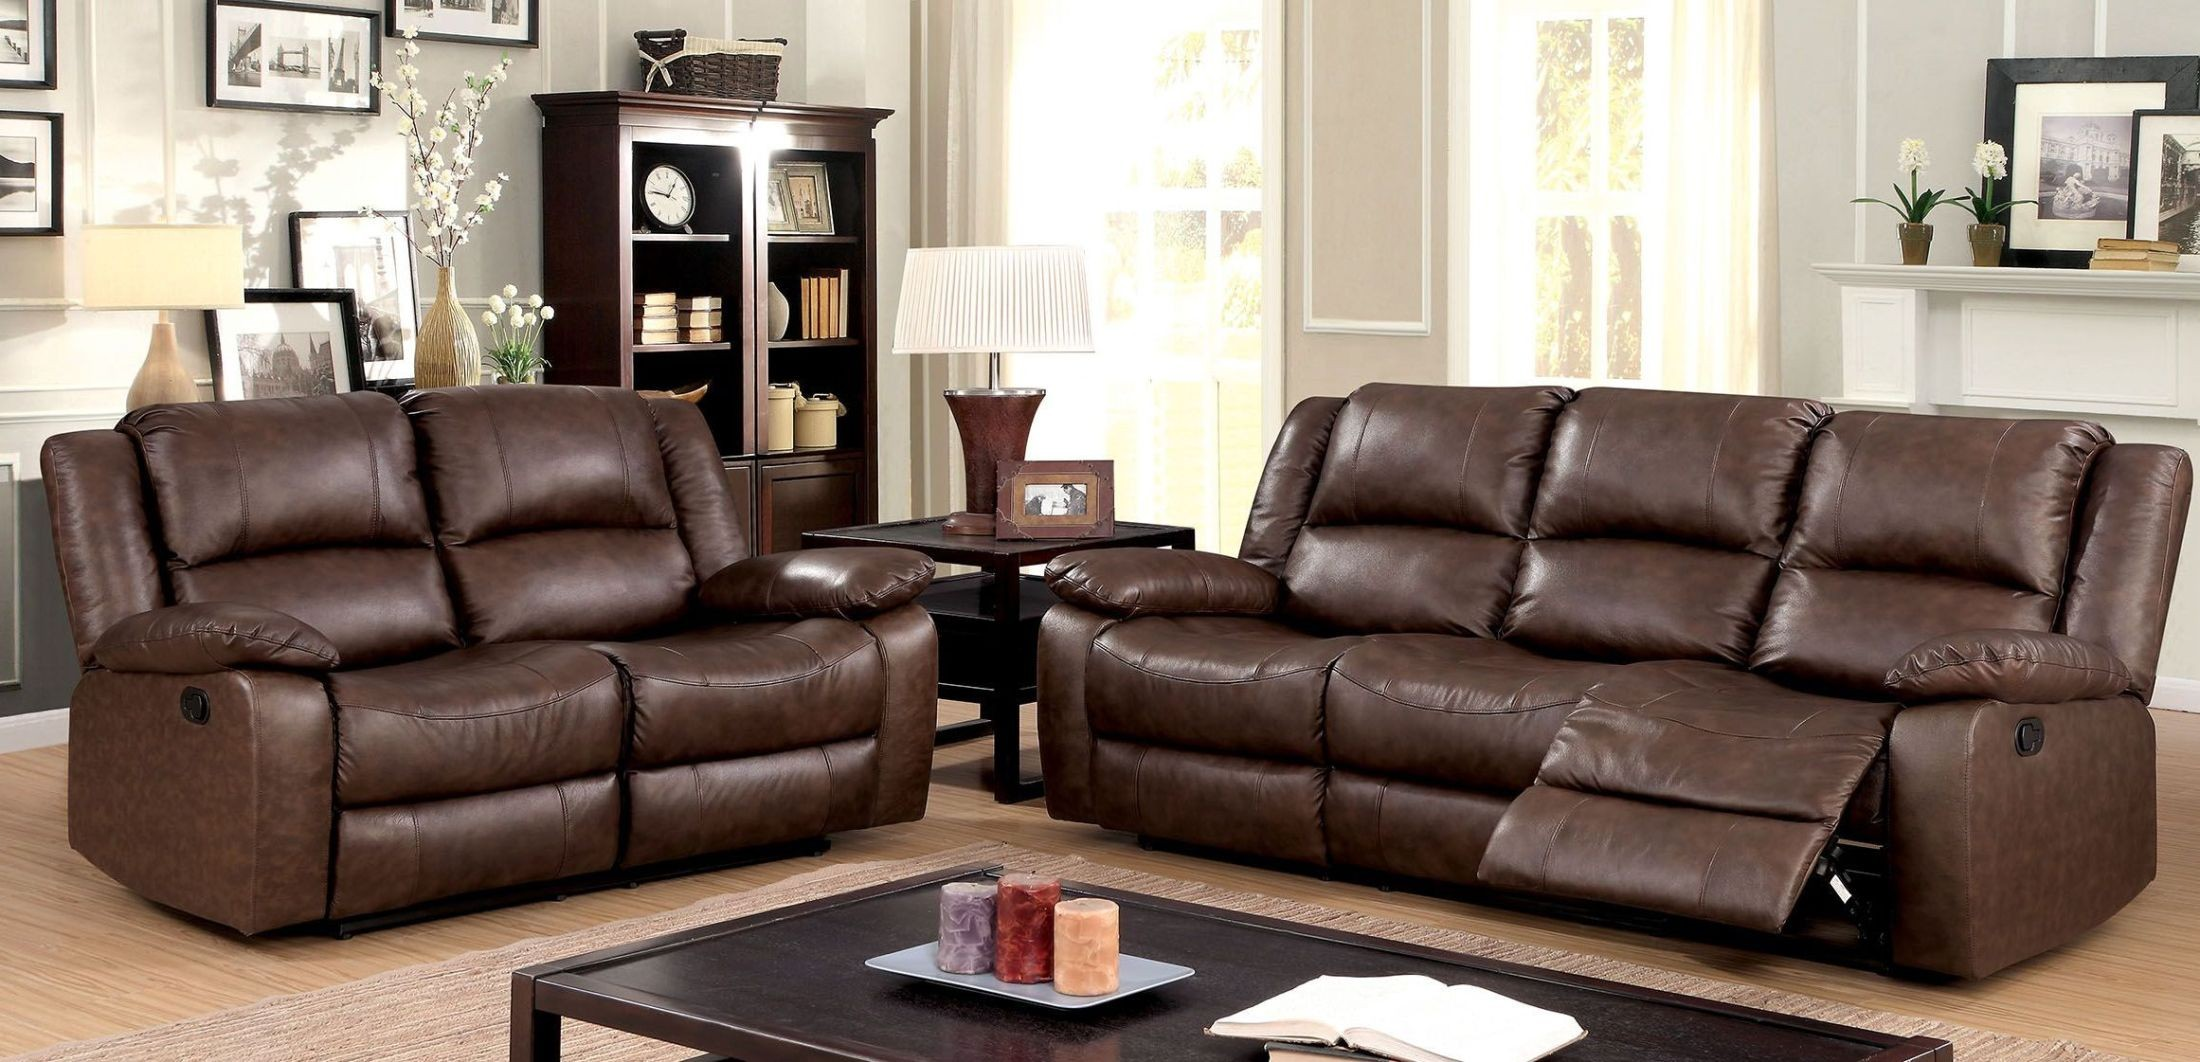 Kris brown sofa reclining living room set from furniture for Brown living room set